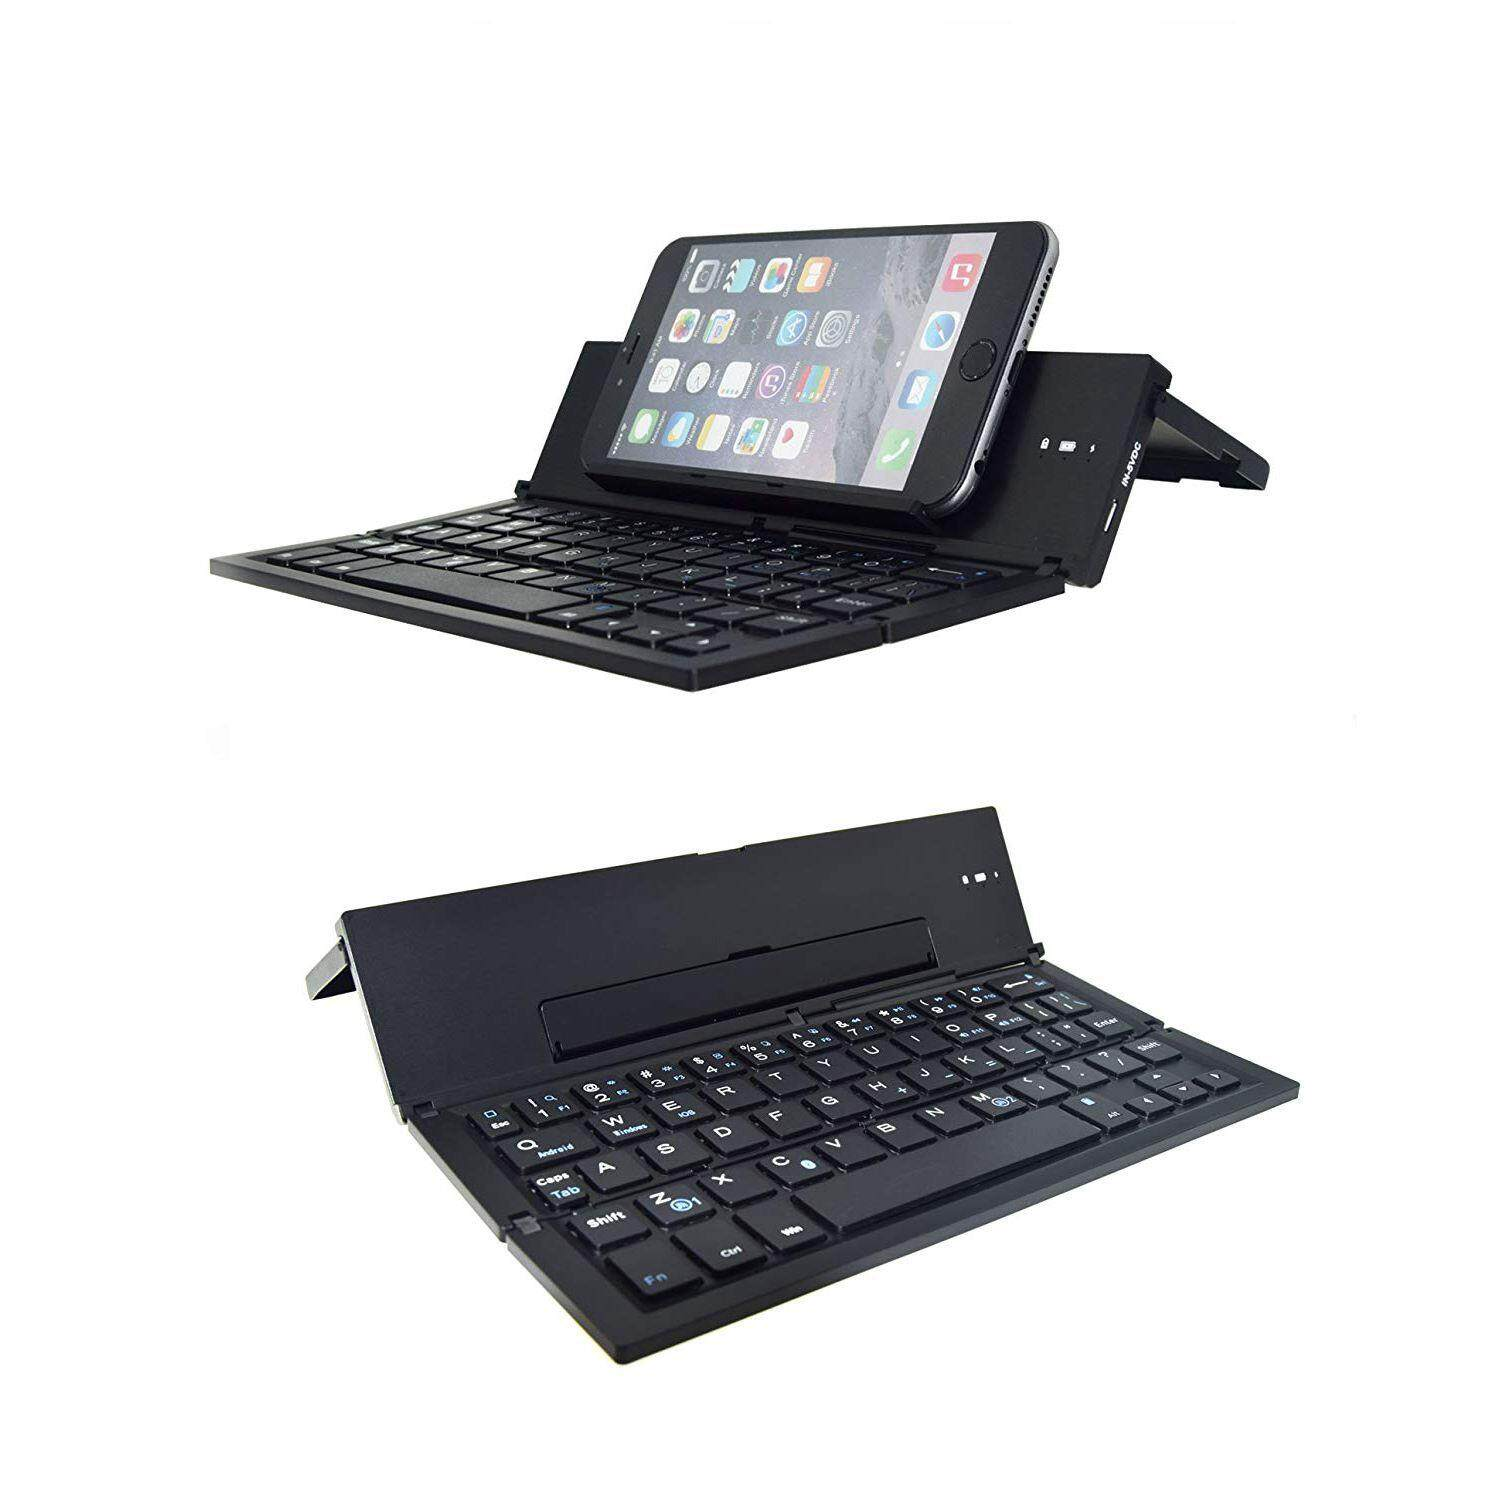 Folding Bluetooth Keyboard,Foldable Wireless Keyboard with Portable Pocket Size, Aluminum Alloy Housing, for iPad, iPhone,Android Devices, and Windows, Laptops and Smartphones Malaysia